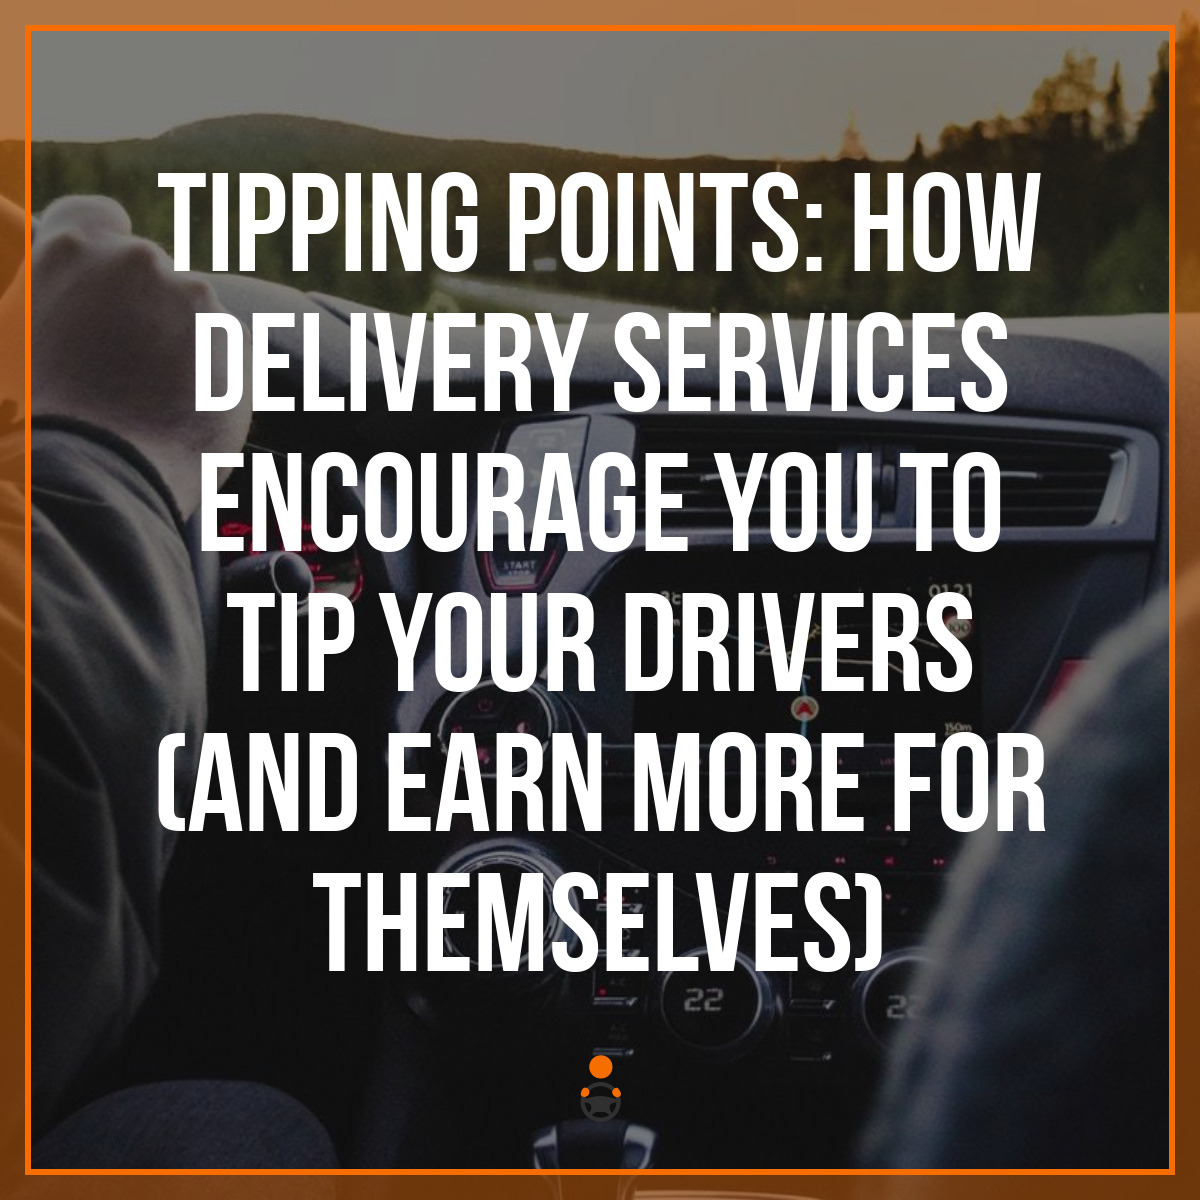 Tipping Points: How Delivery Services Encourage You to Tip Your Drivers (and Earn More for Themselves)